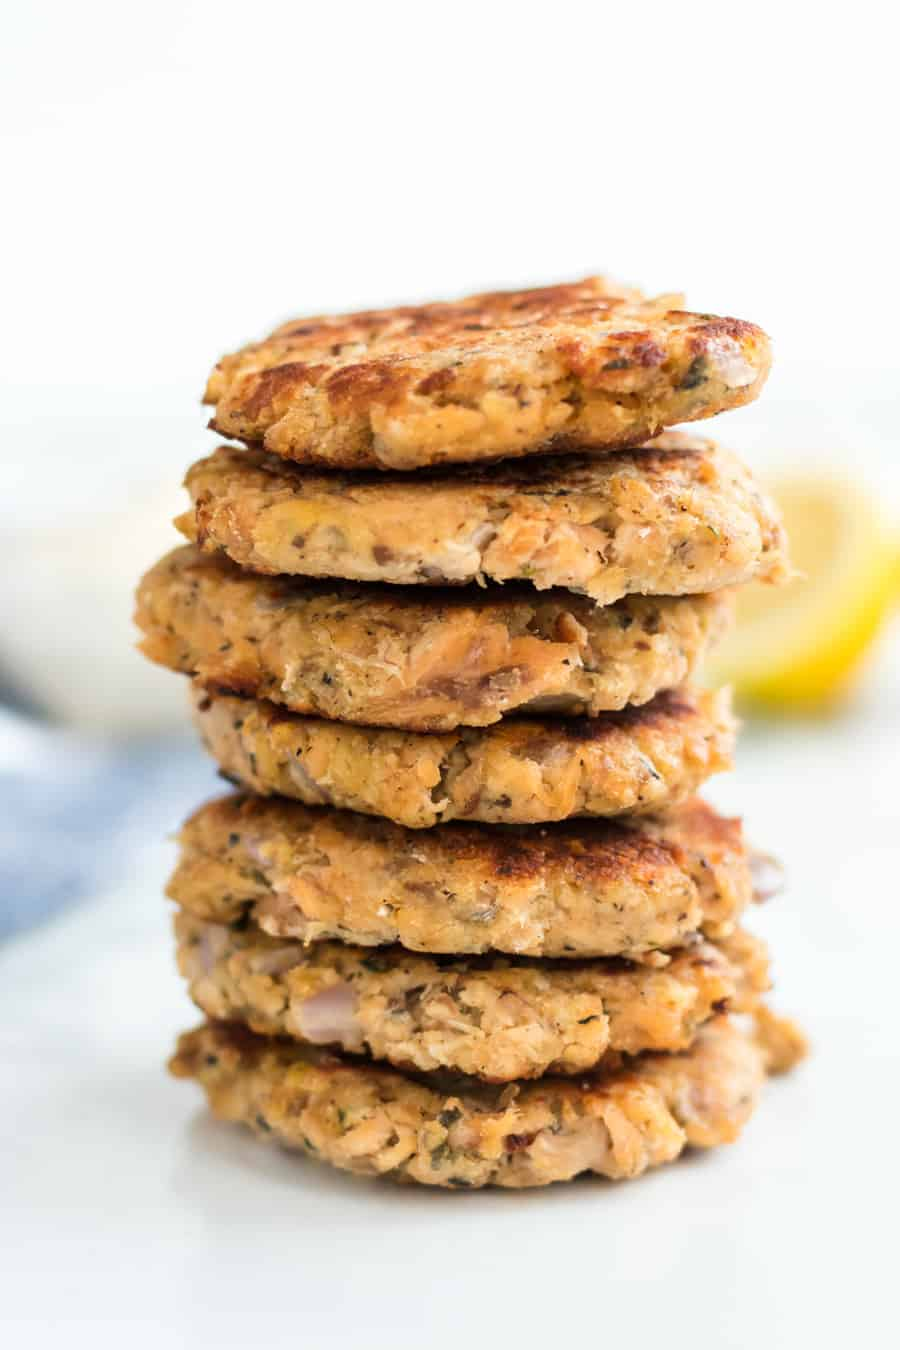 Homemade salmon patties made with canned salmon, dried bread crumbs, onion, and a few other simple ingredient that only take about 30 minutes to make.